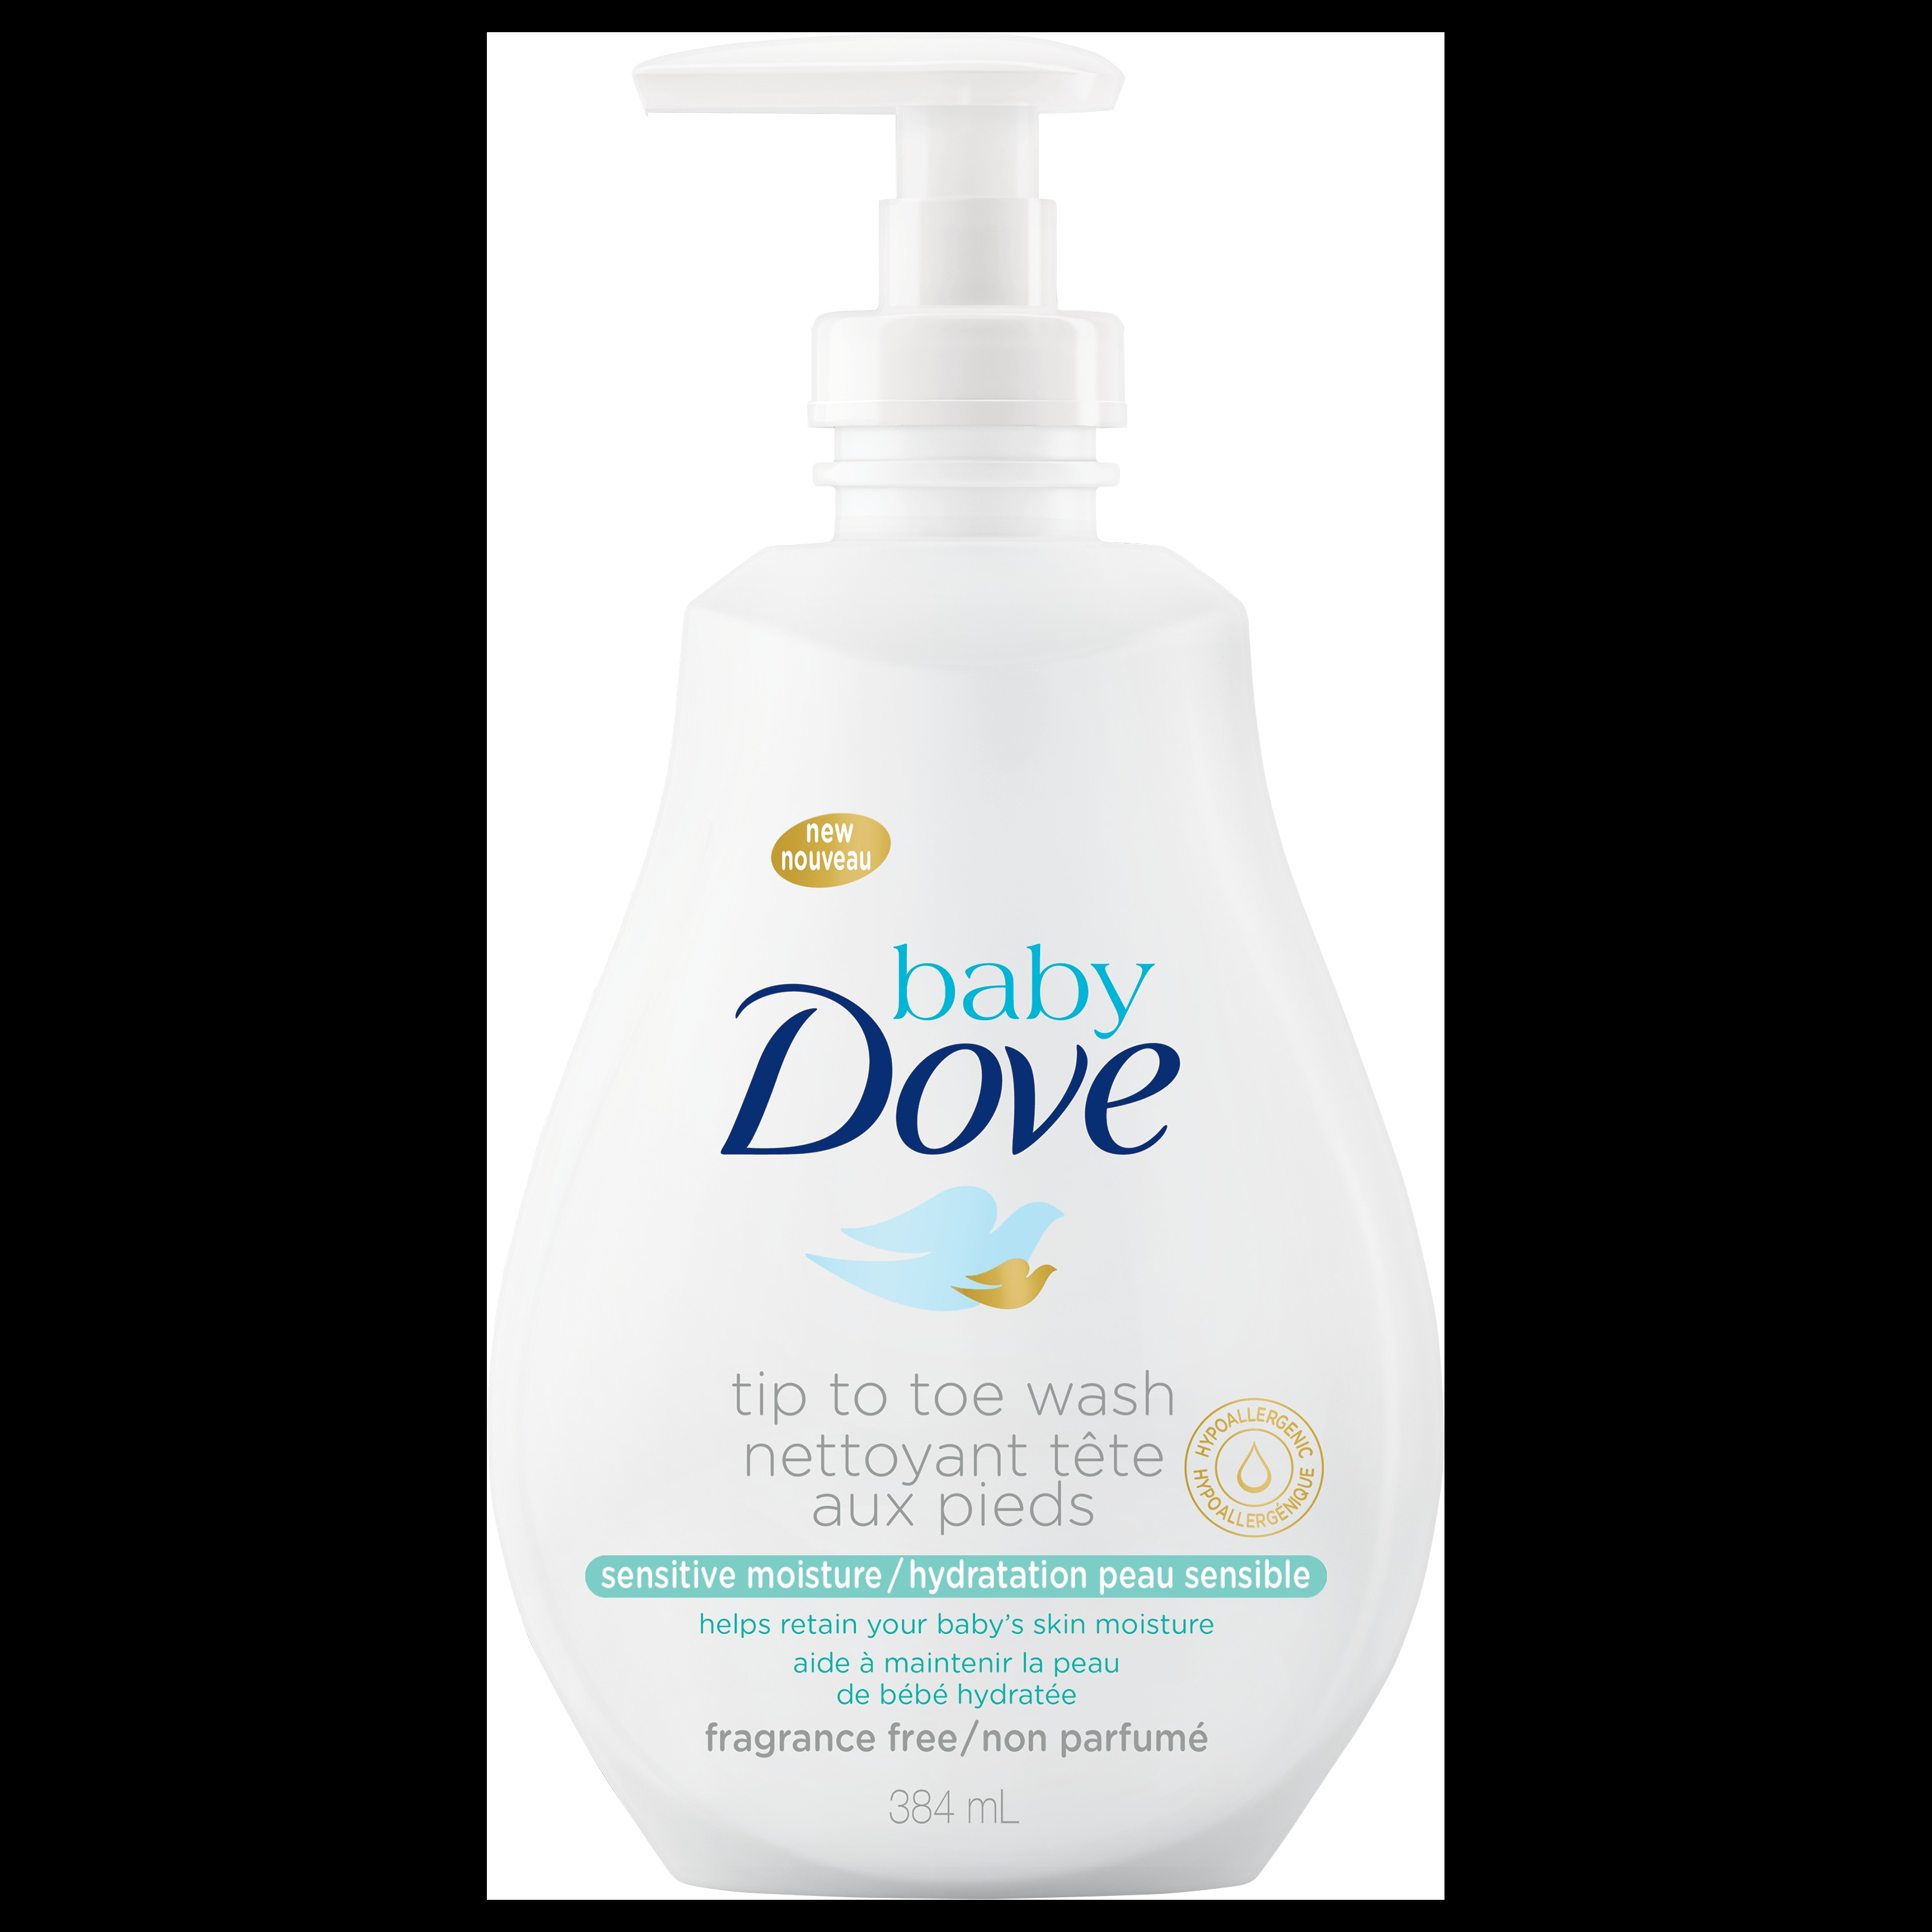 Baby Dove Sensitive Moisture Tip To Toe Wash Reviews In Baby Bathing Soaps Body Washes Chickadvisor